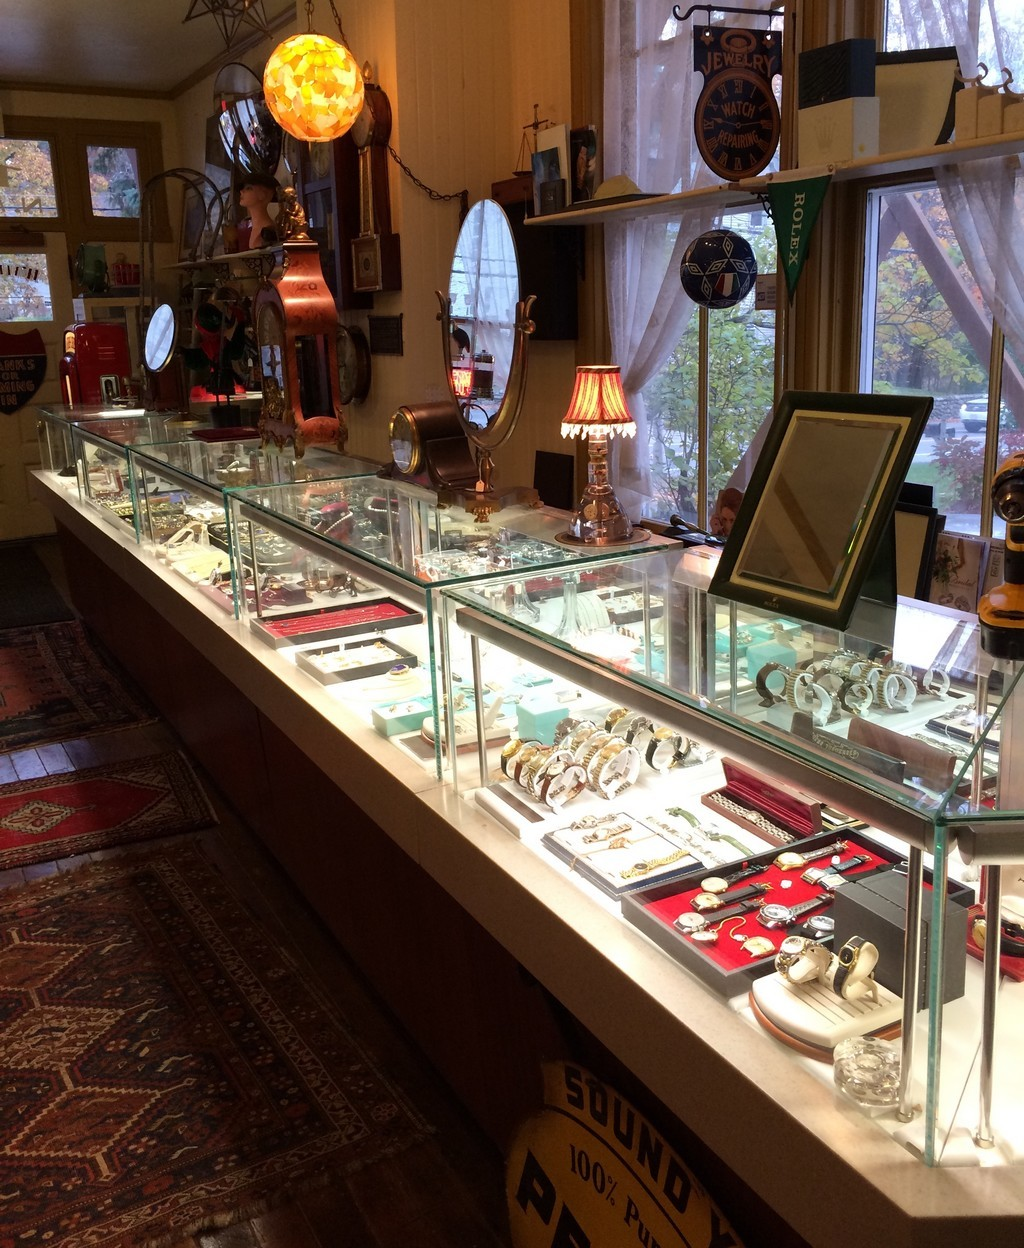 Watermark buys & sells quality jewelry